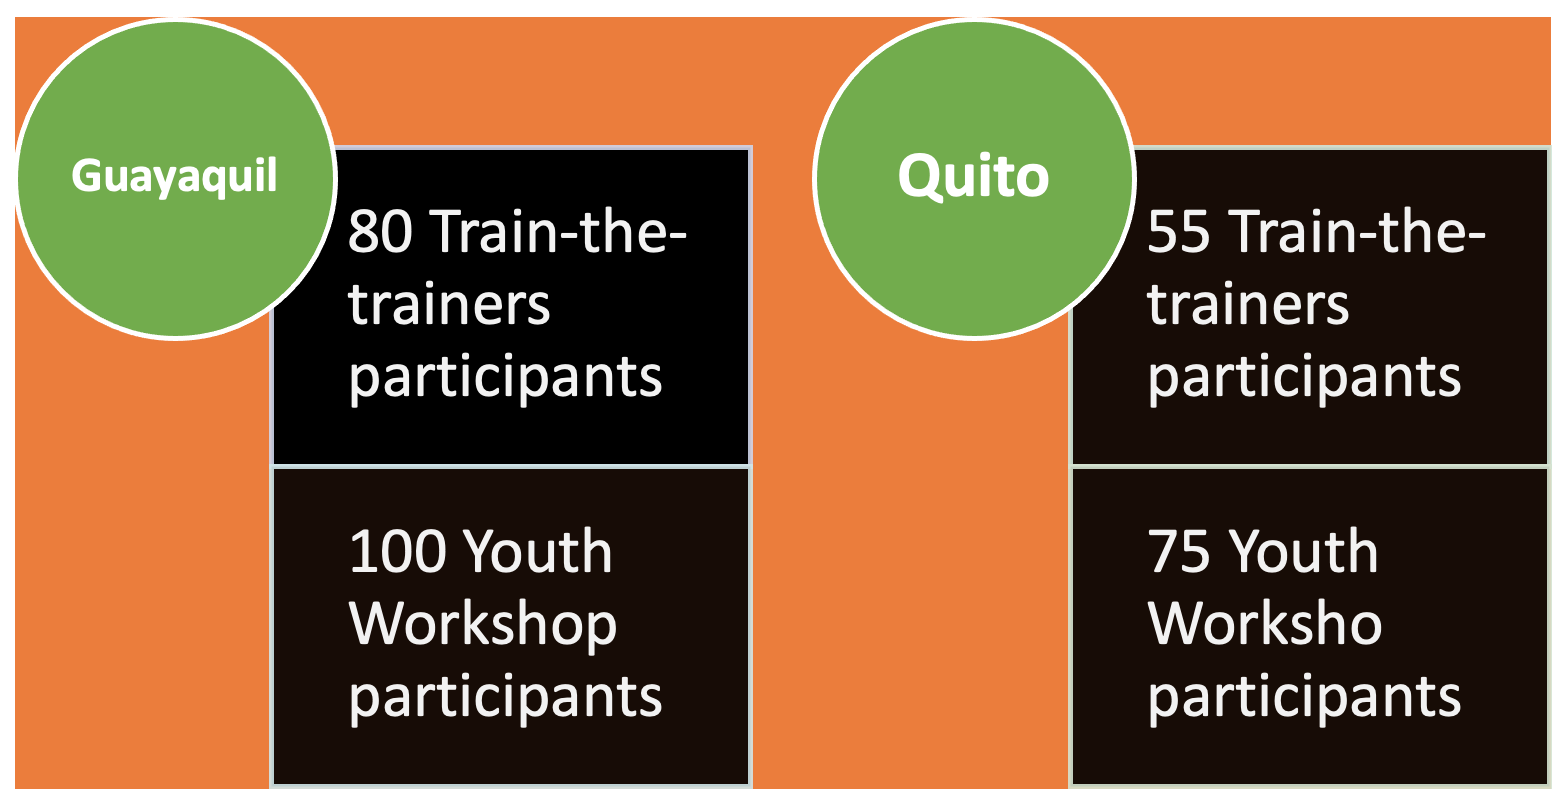 participant numbers for Guayaquil and Quito